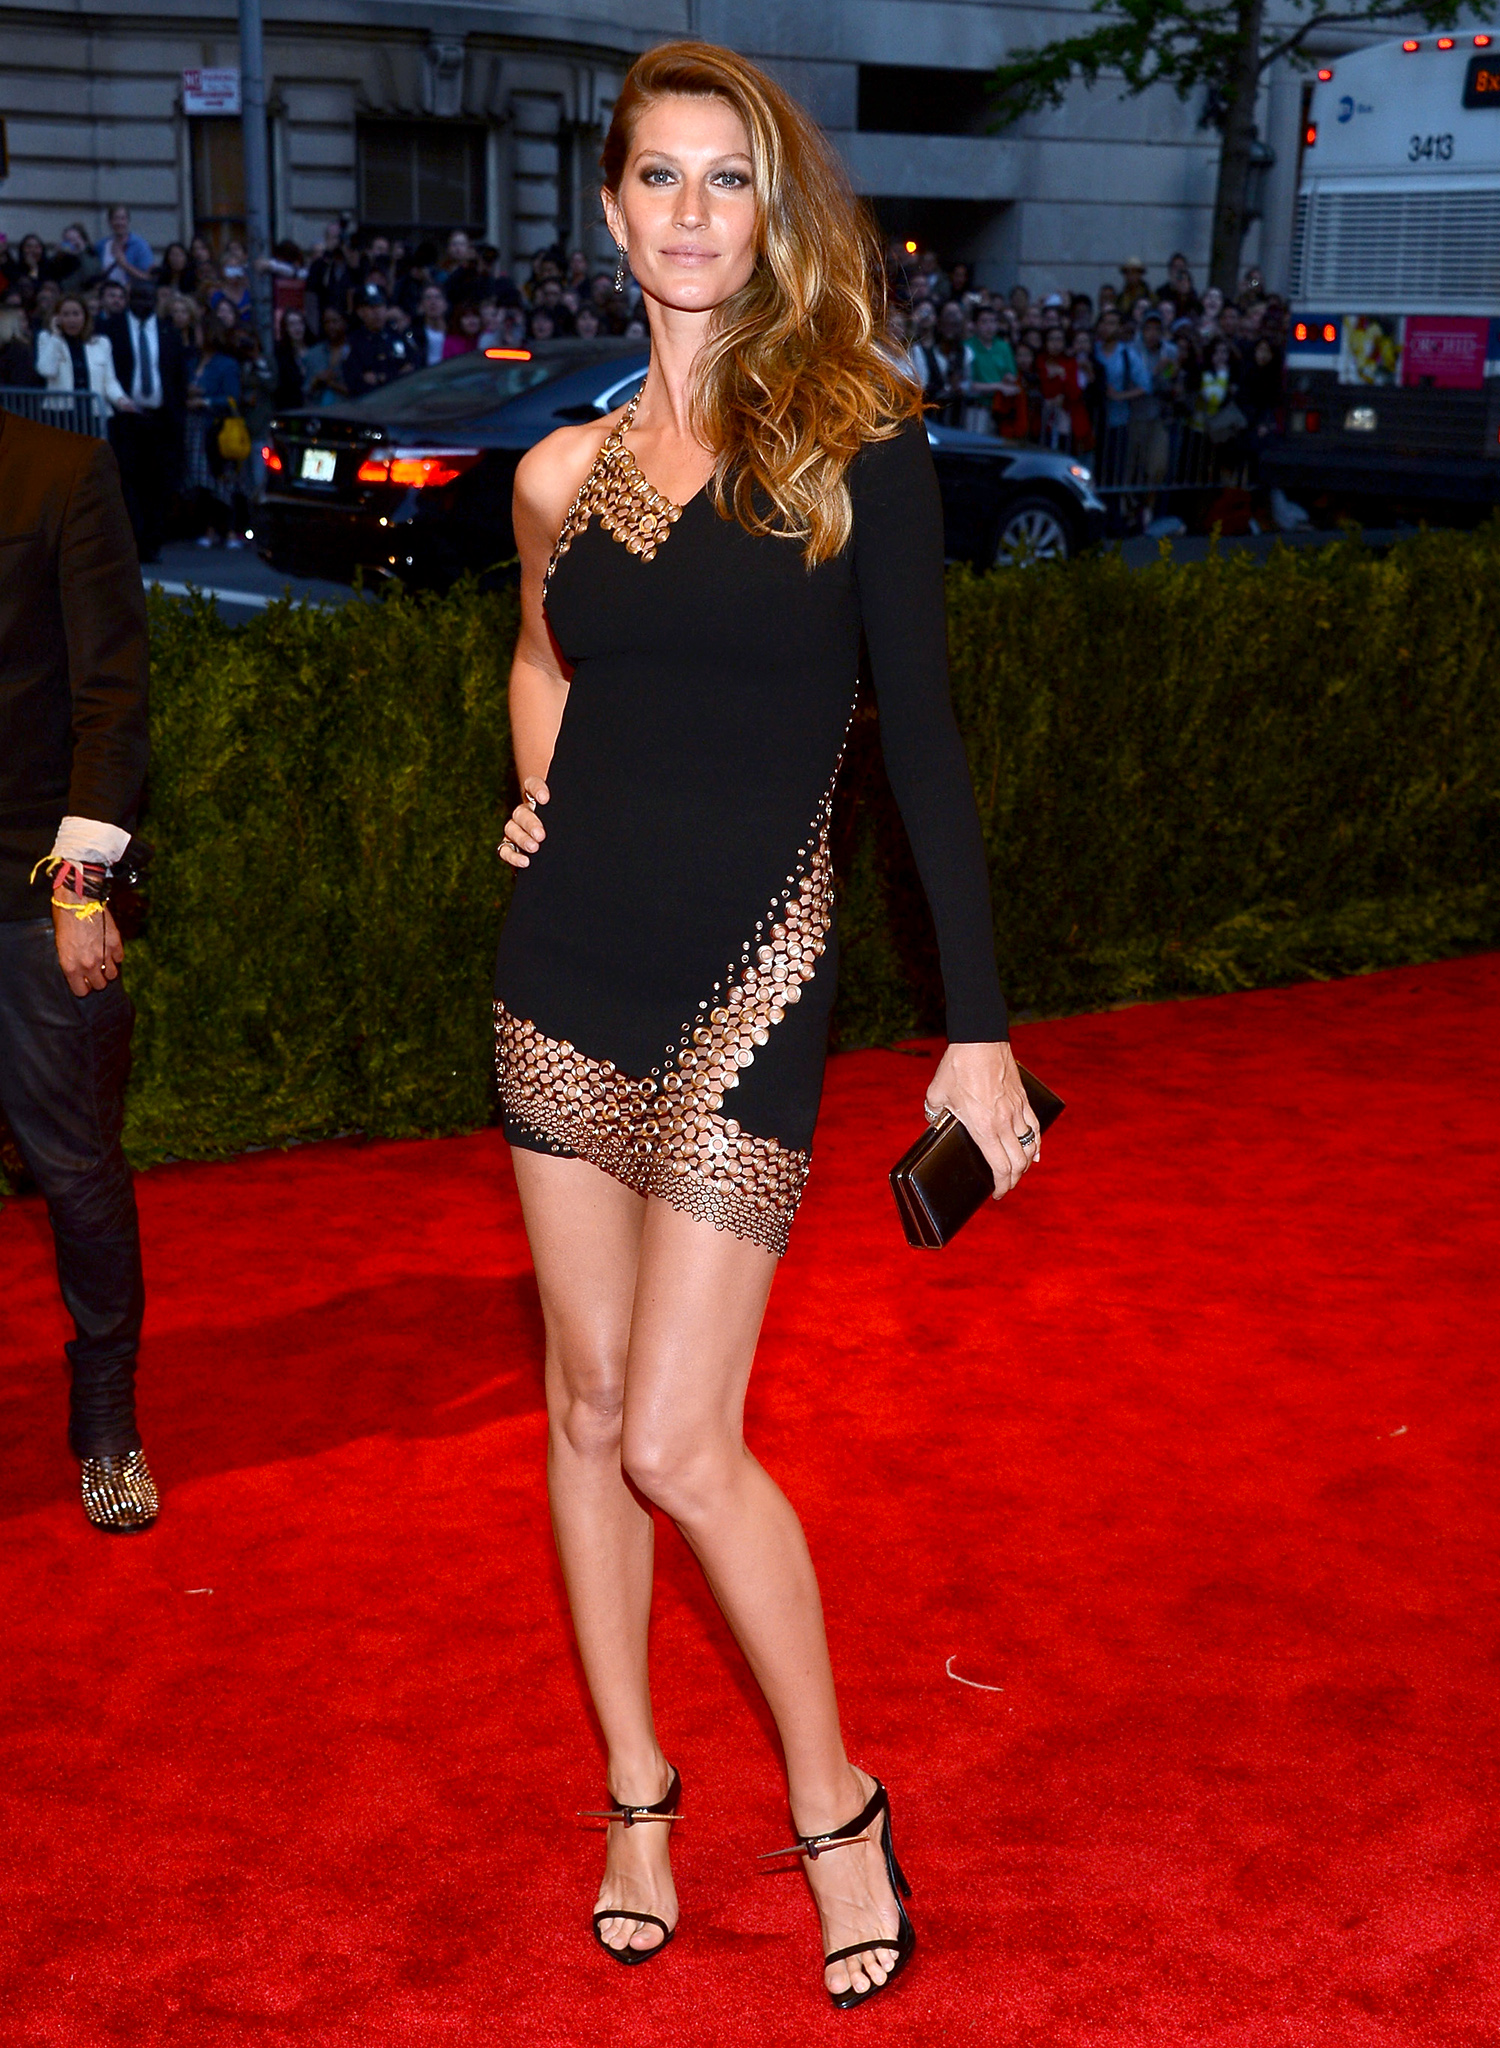 Gisele Bundchen (Larry Busacca/Getty Images)